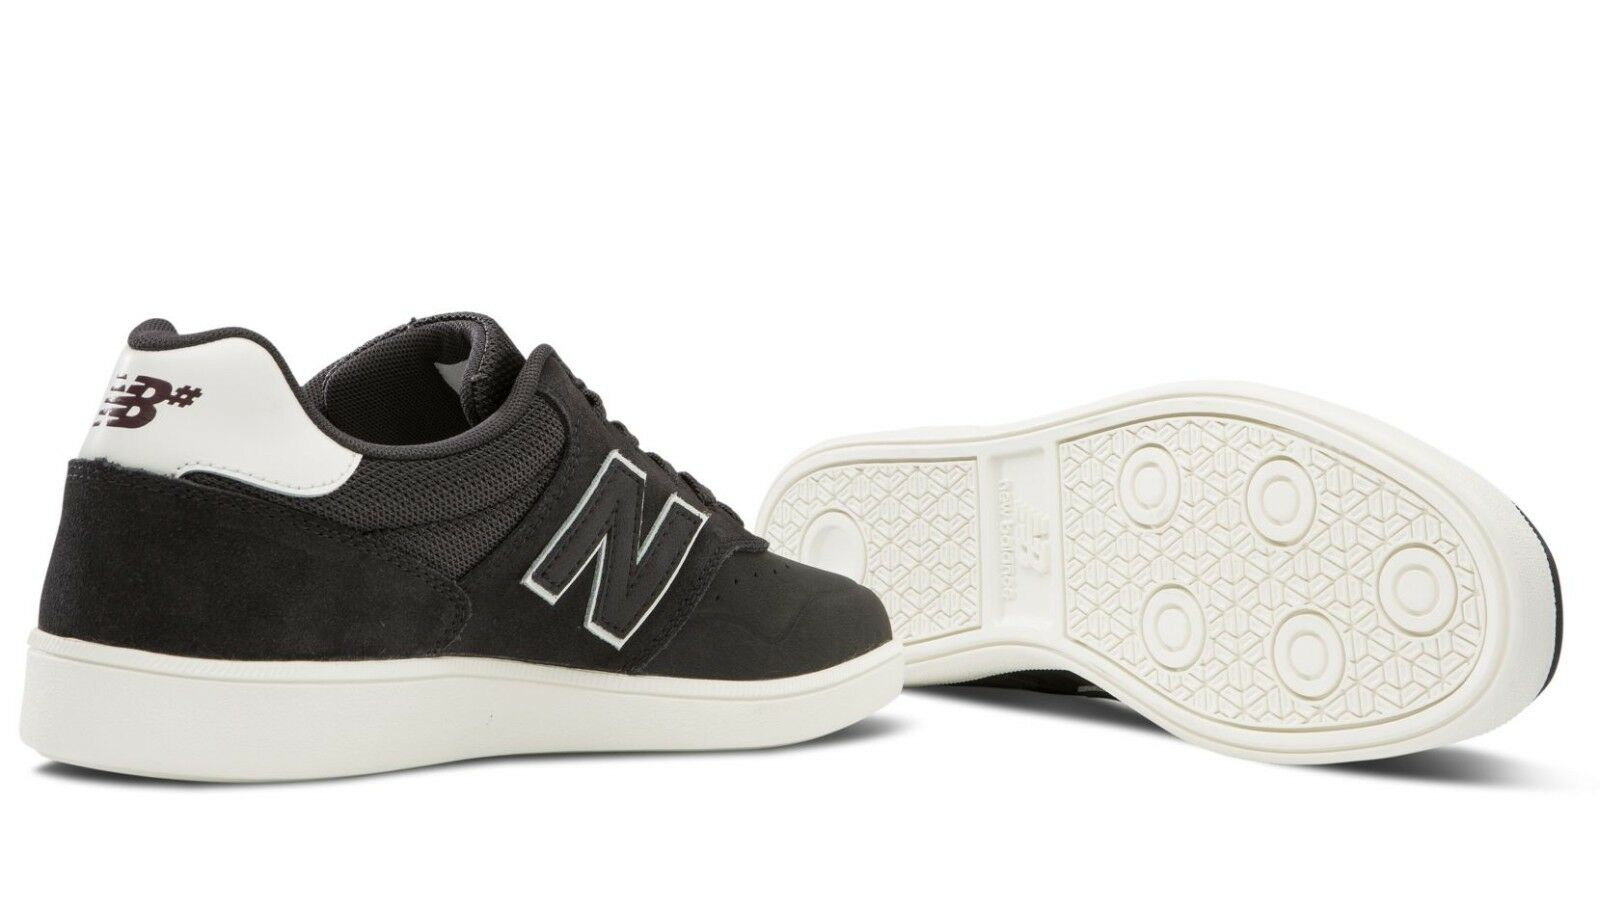 MENS SKATEBOARDING NEW BALANCE NUMERIC 288 SKATEBOARDING MENS SHOES BLACK CAVIAR WHITE    (DKG) f29b3b